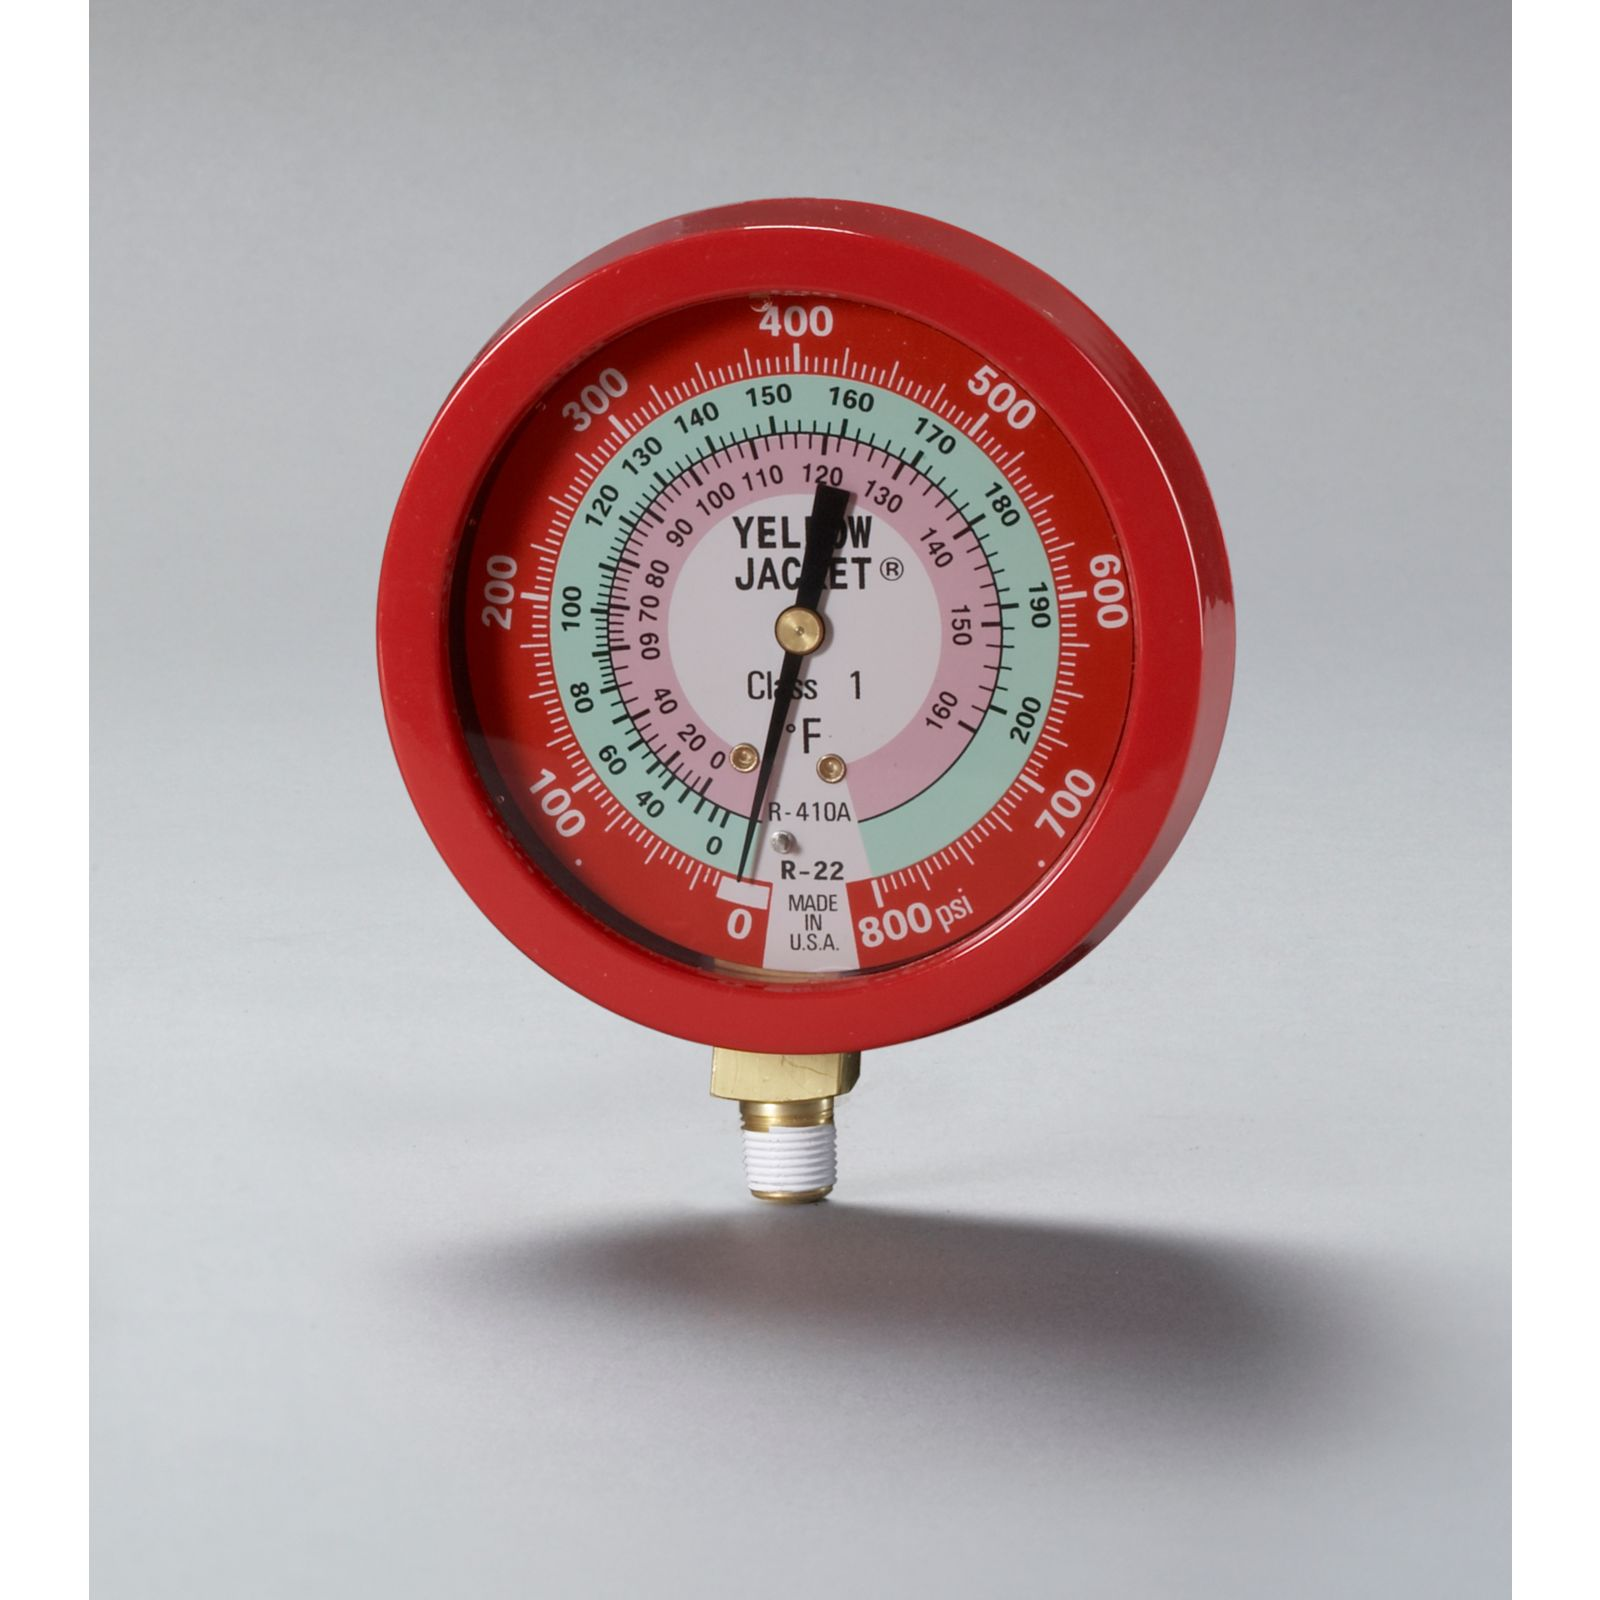 "Yellow Jacket 49515 - Liquid Filled Fahrenheit Red Pressure Manifold Gauge 3-1/2"" for R22/410A"